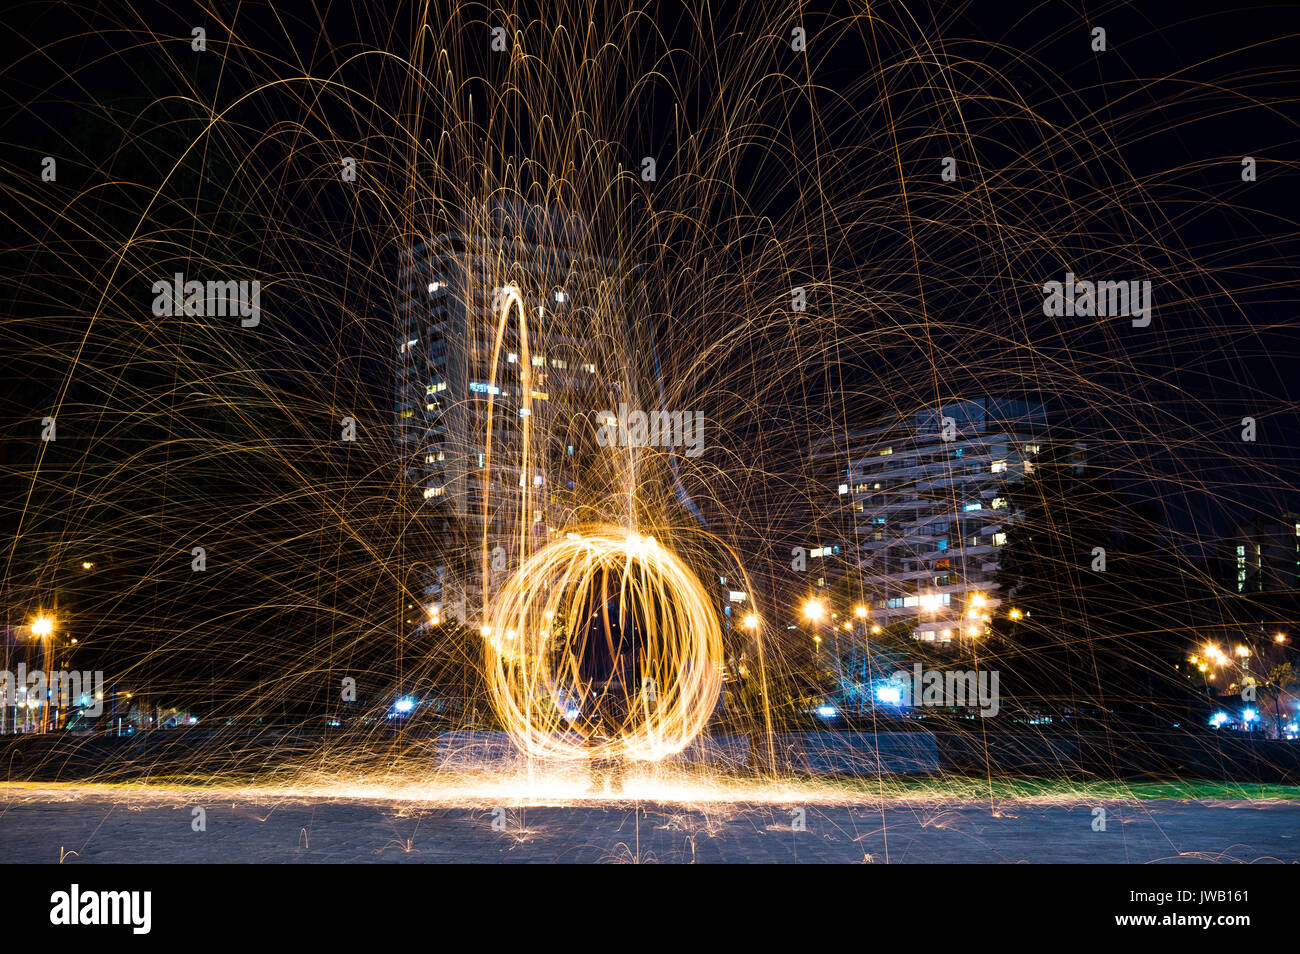 Steel wool light painting in Santiago, Chile Stock Photo